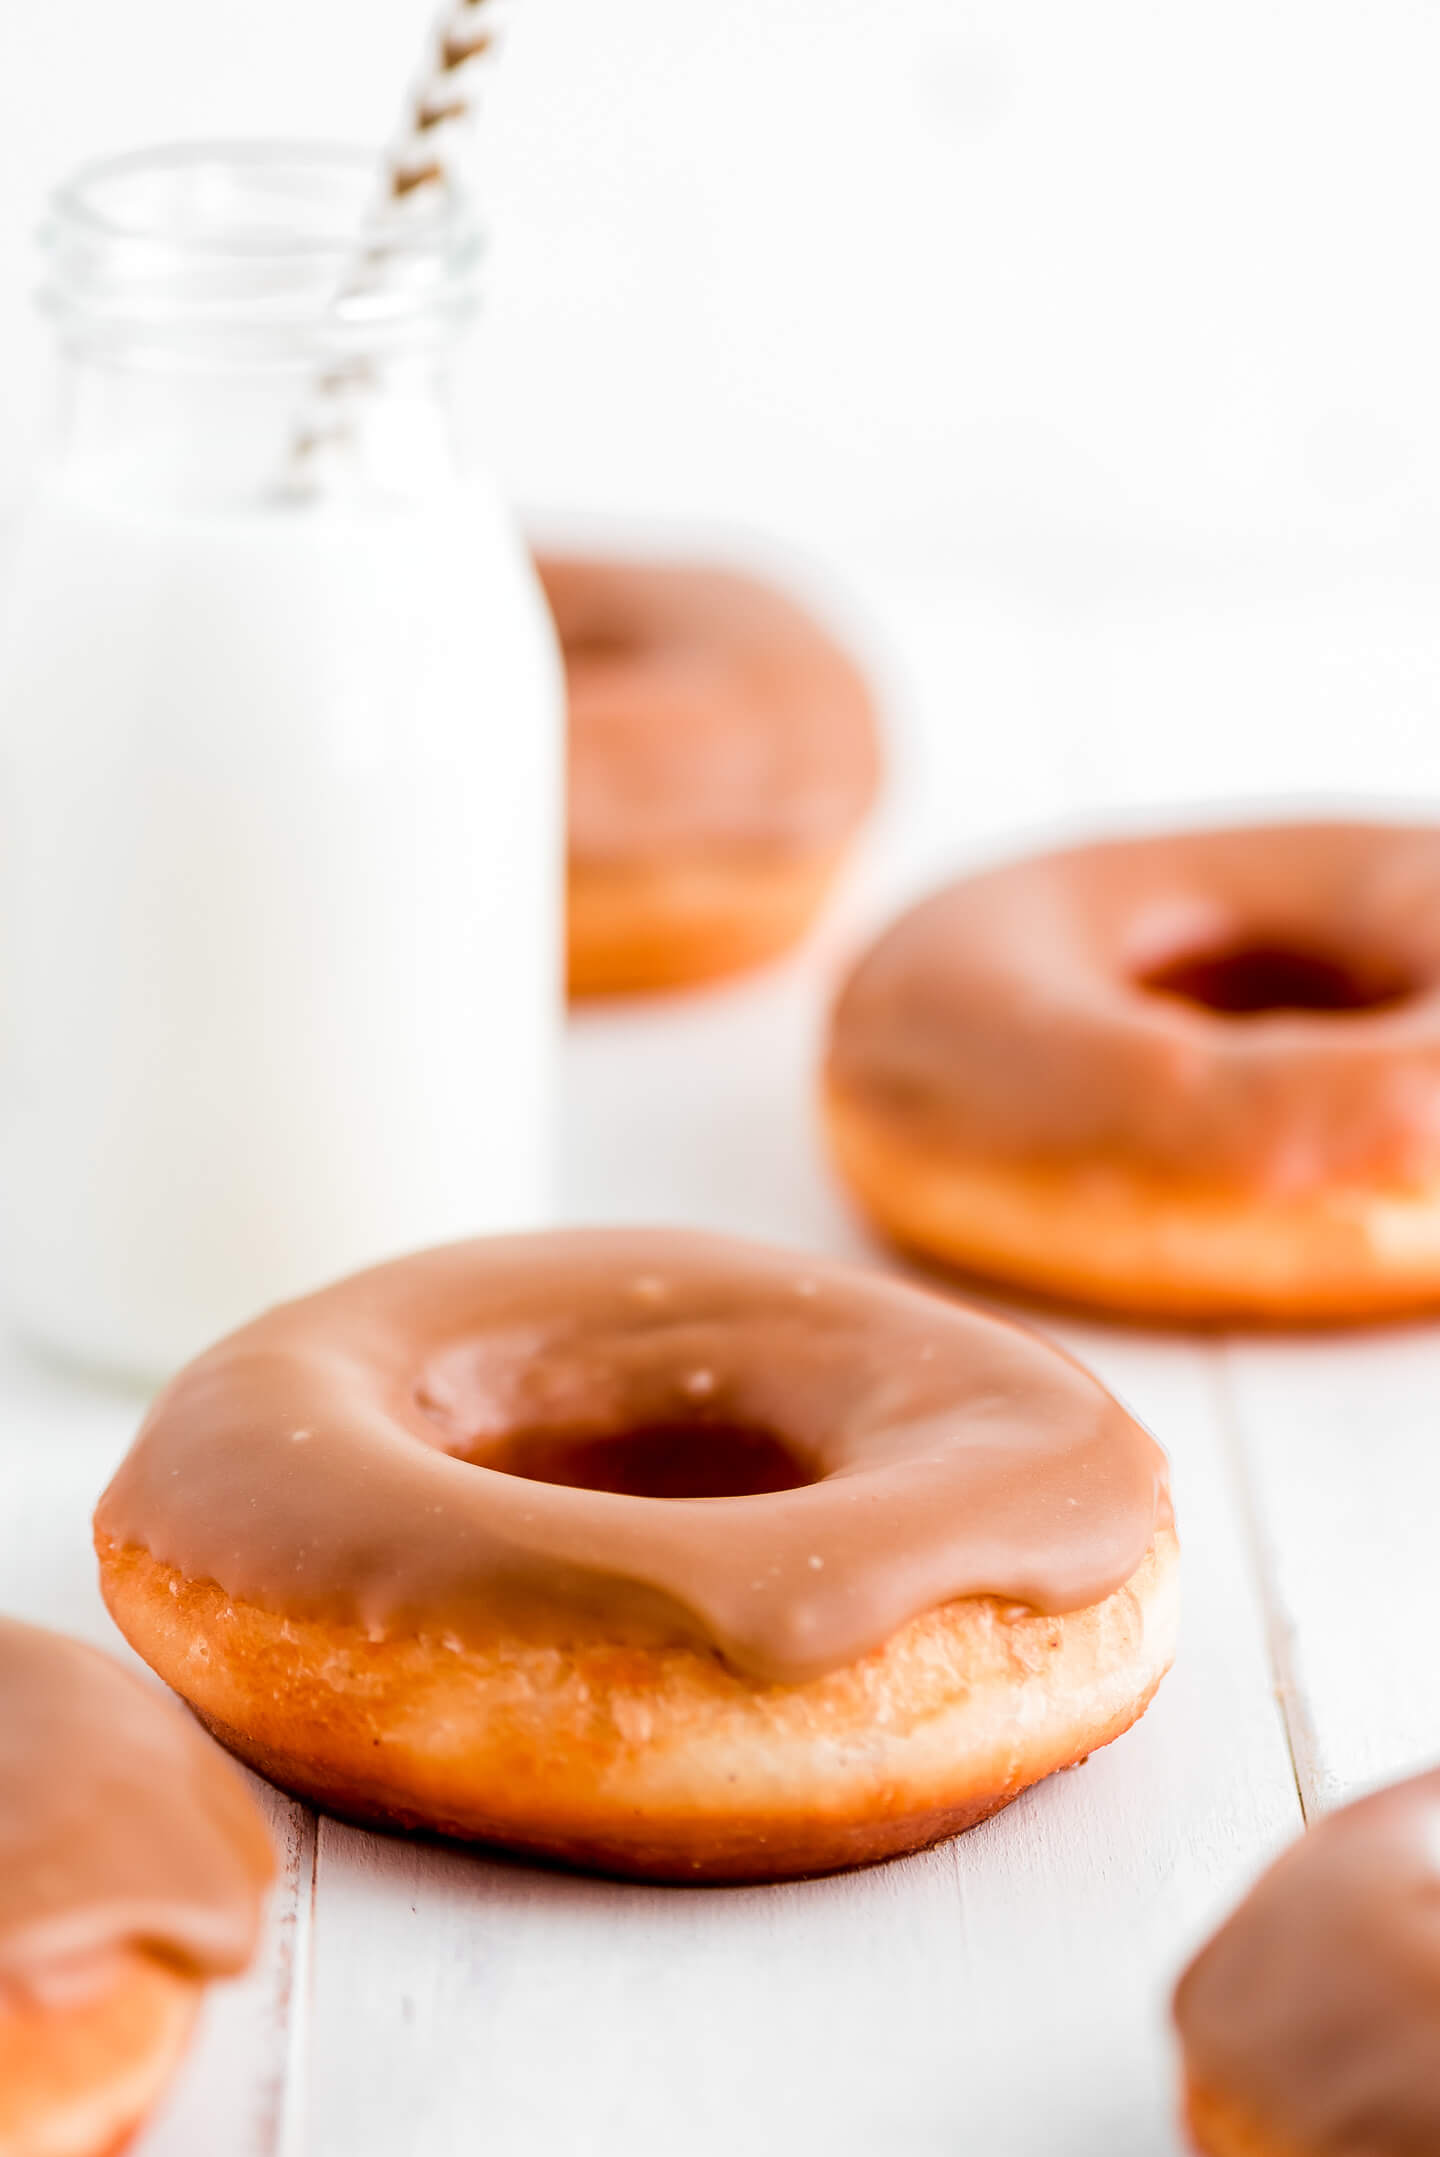 A few donuts with maple glaze on a table with a bottle of milk.